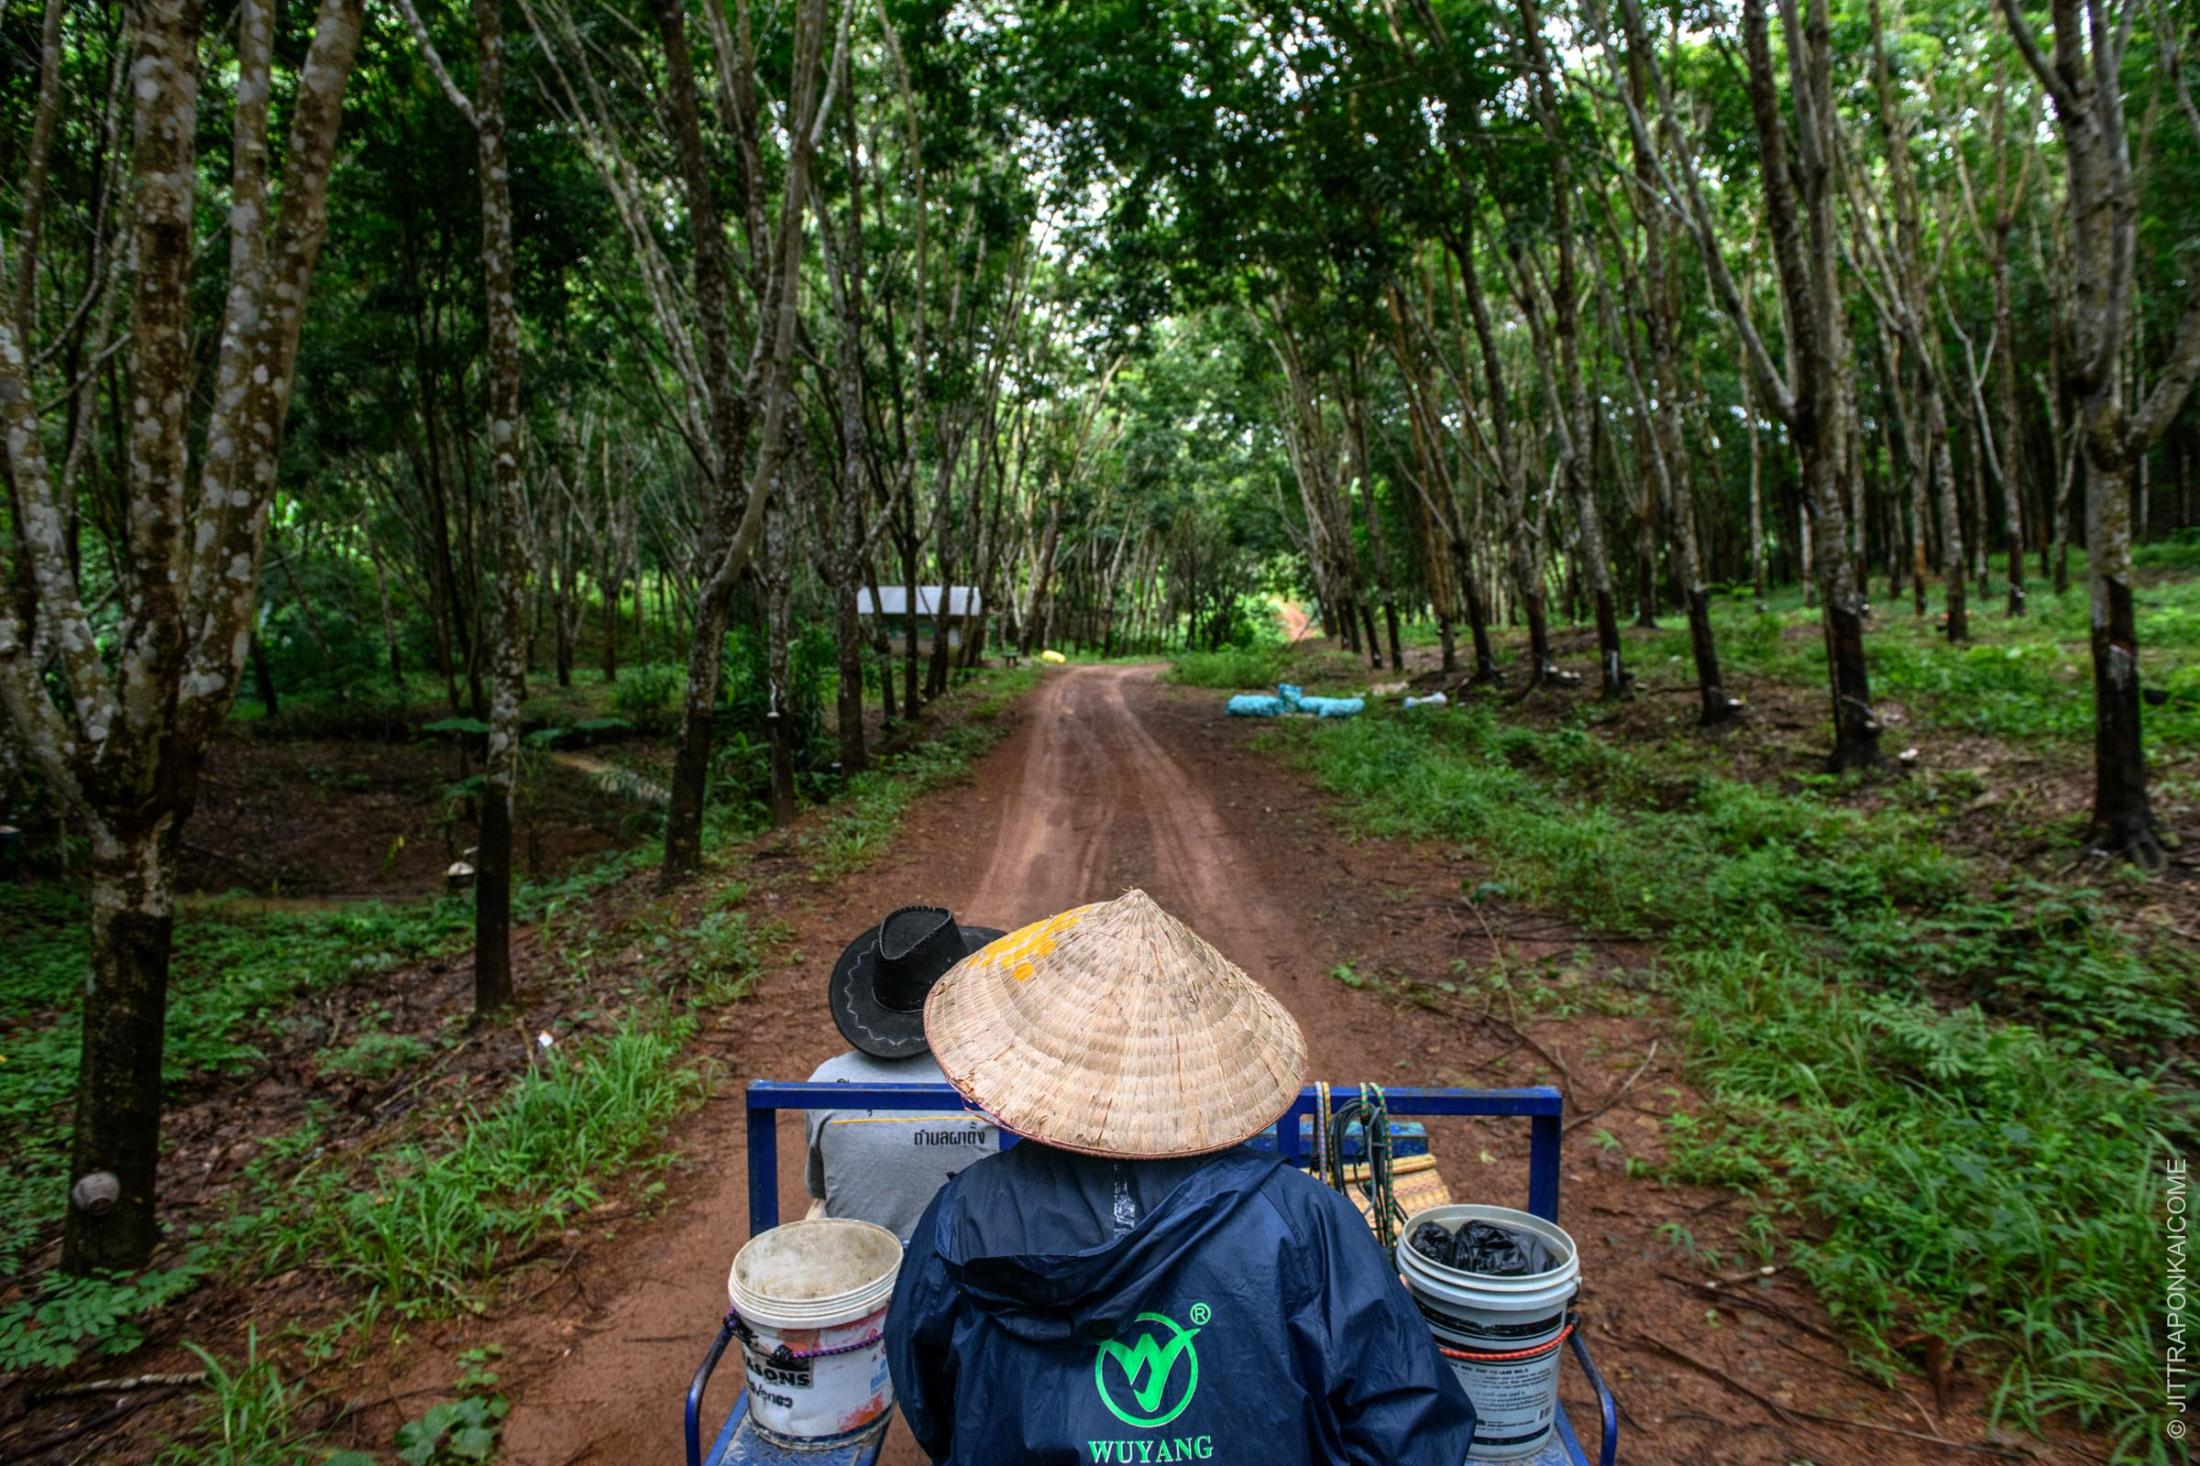 Fishermen ride a truck to their new jobs at a rubber plantation, in order to supplement their income after being left unable to make a living from fishing. A reduction in the fish population, caused by upstream dams on the Mekong River, lies at the root of this problem. In Nong Khai, Thailand – August 2020.